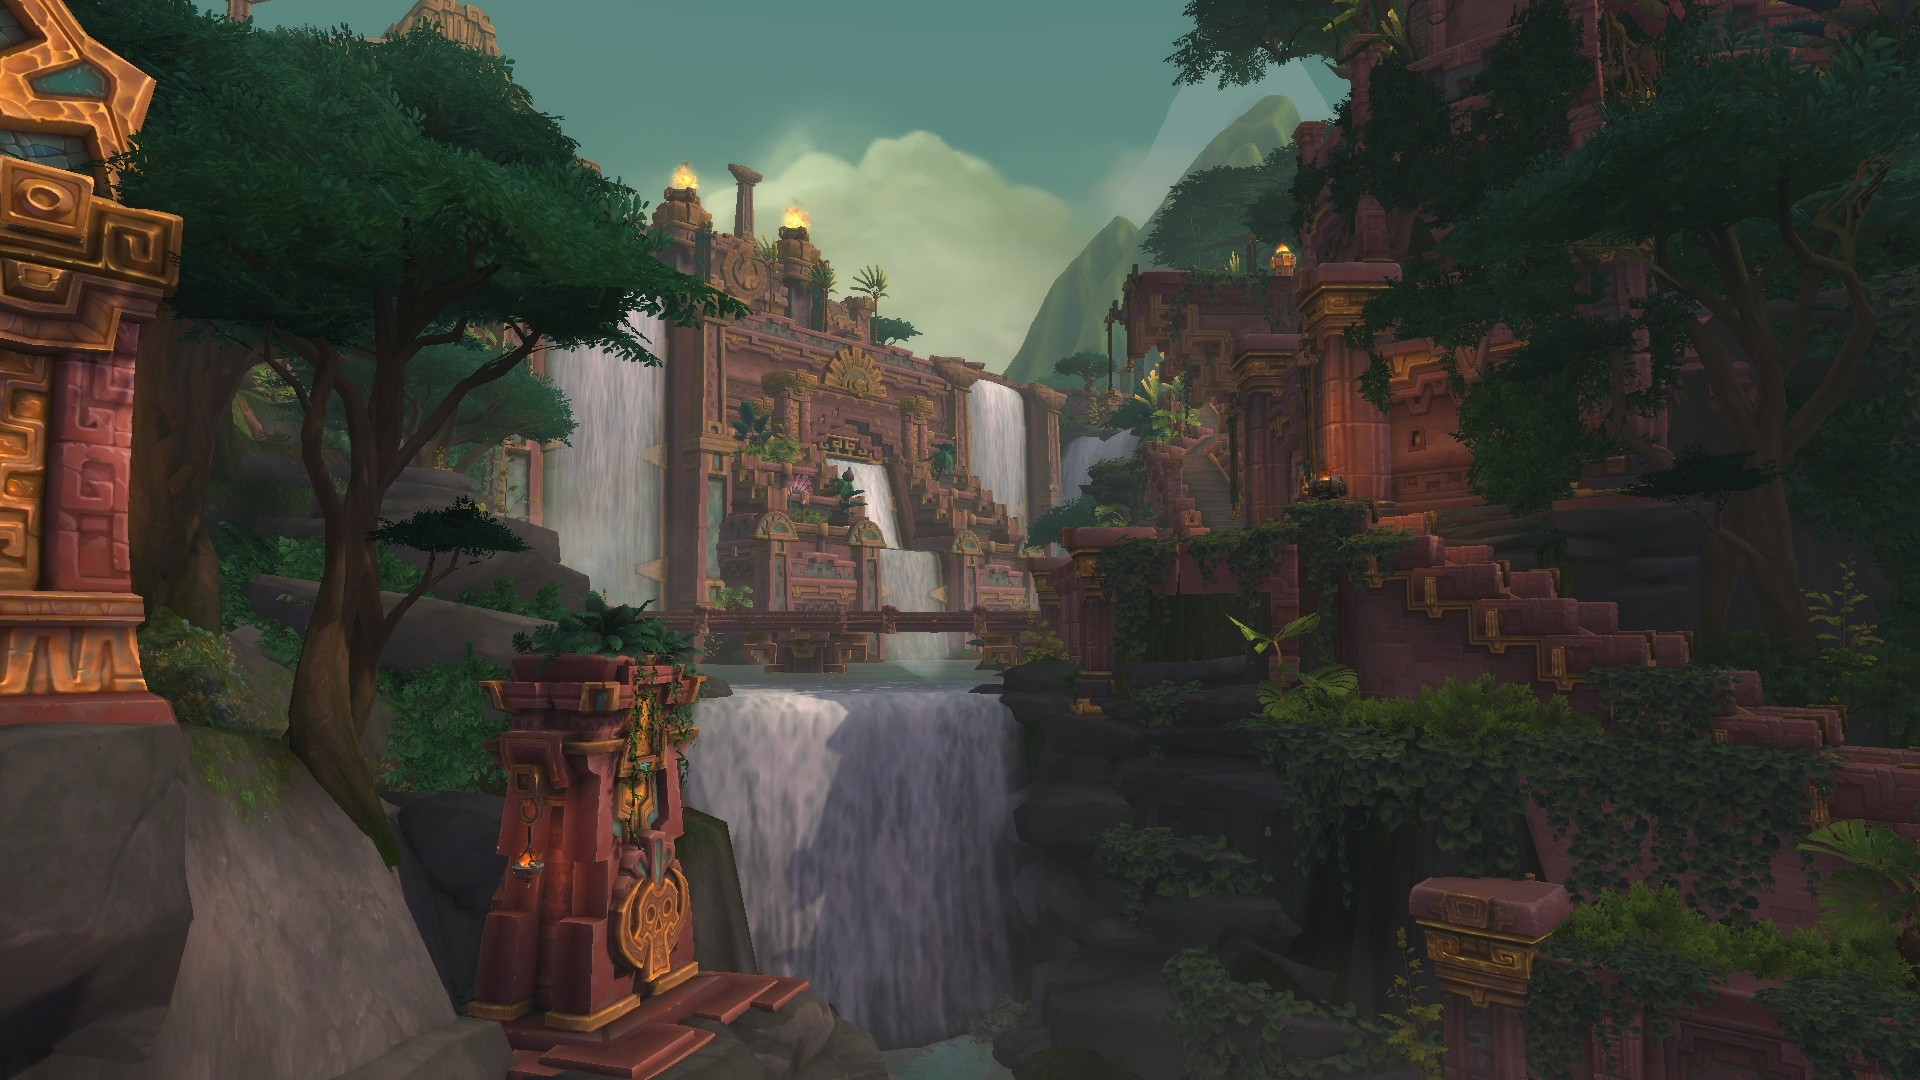 6743 - Warcraft's cities and their real world equivalents